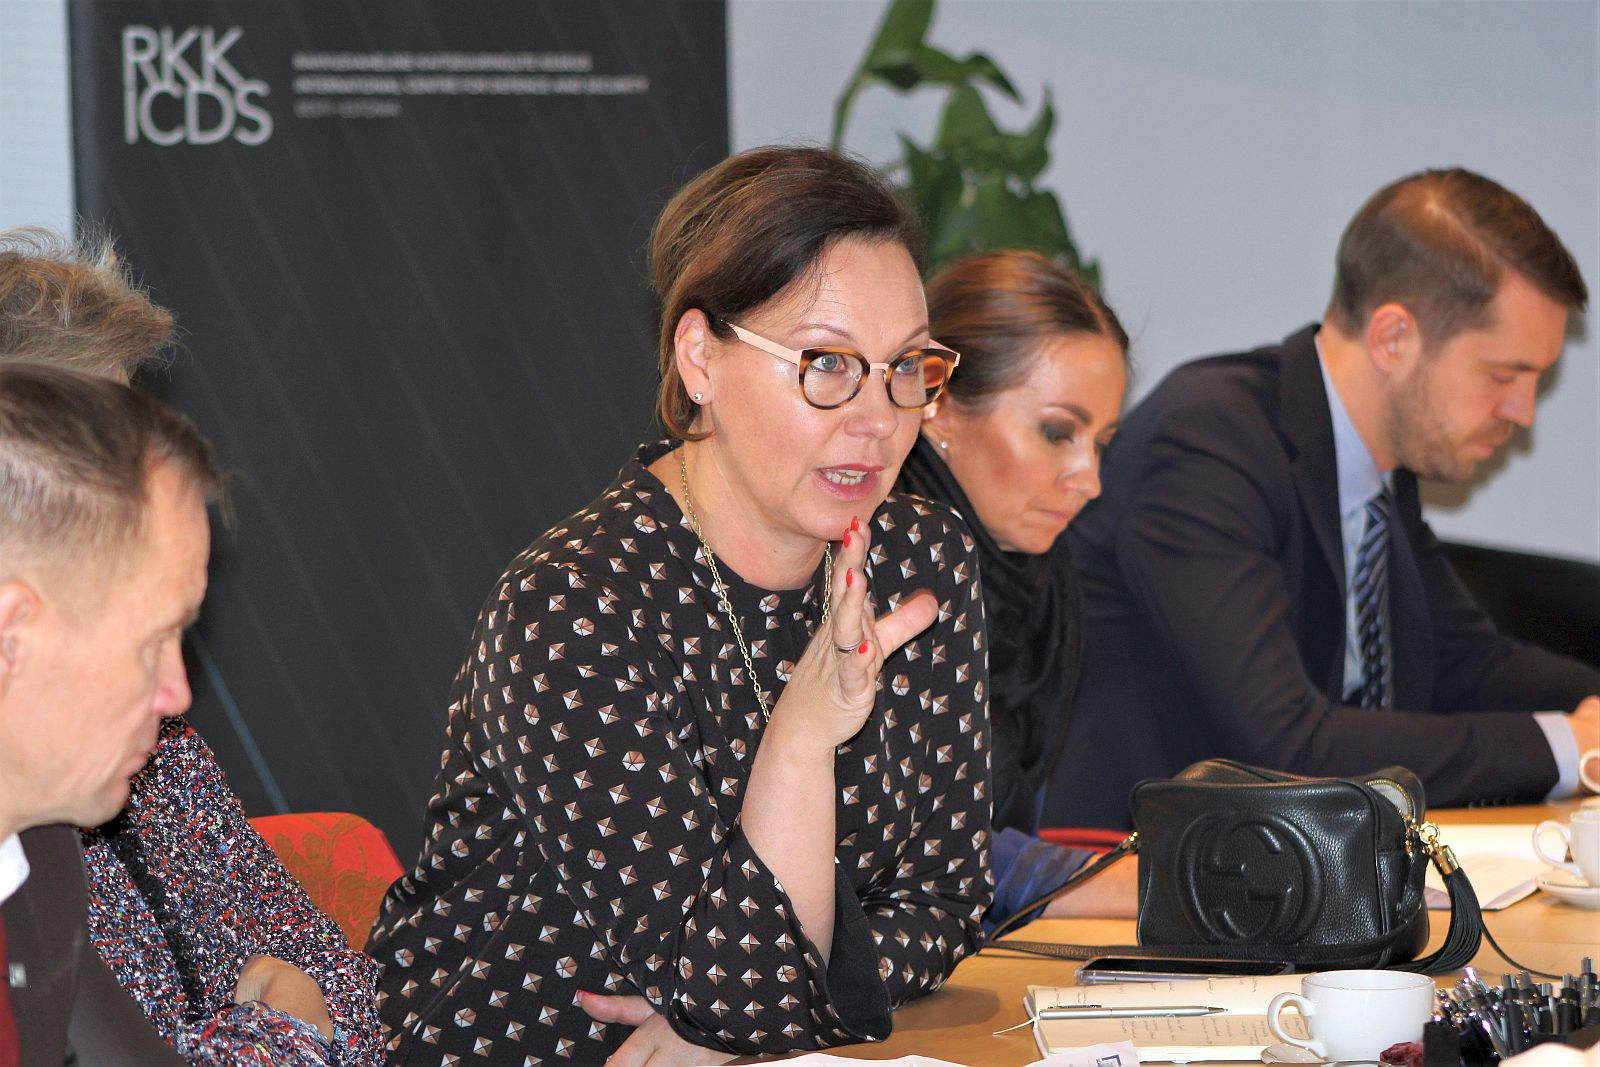 Image for Members of the Foreign Affairs Committee of Eduskunta visited ICDS